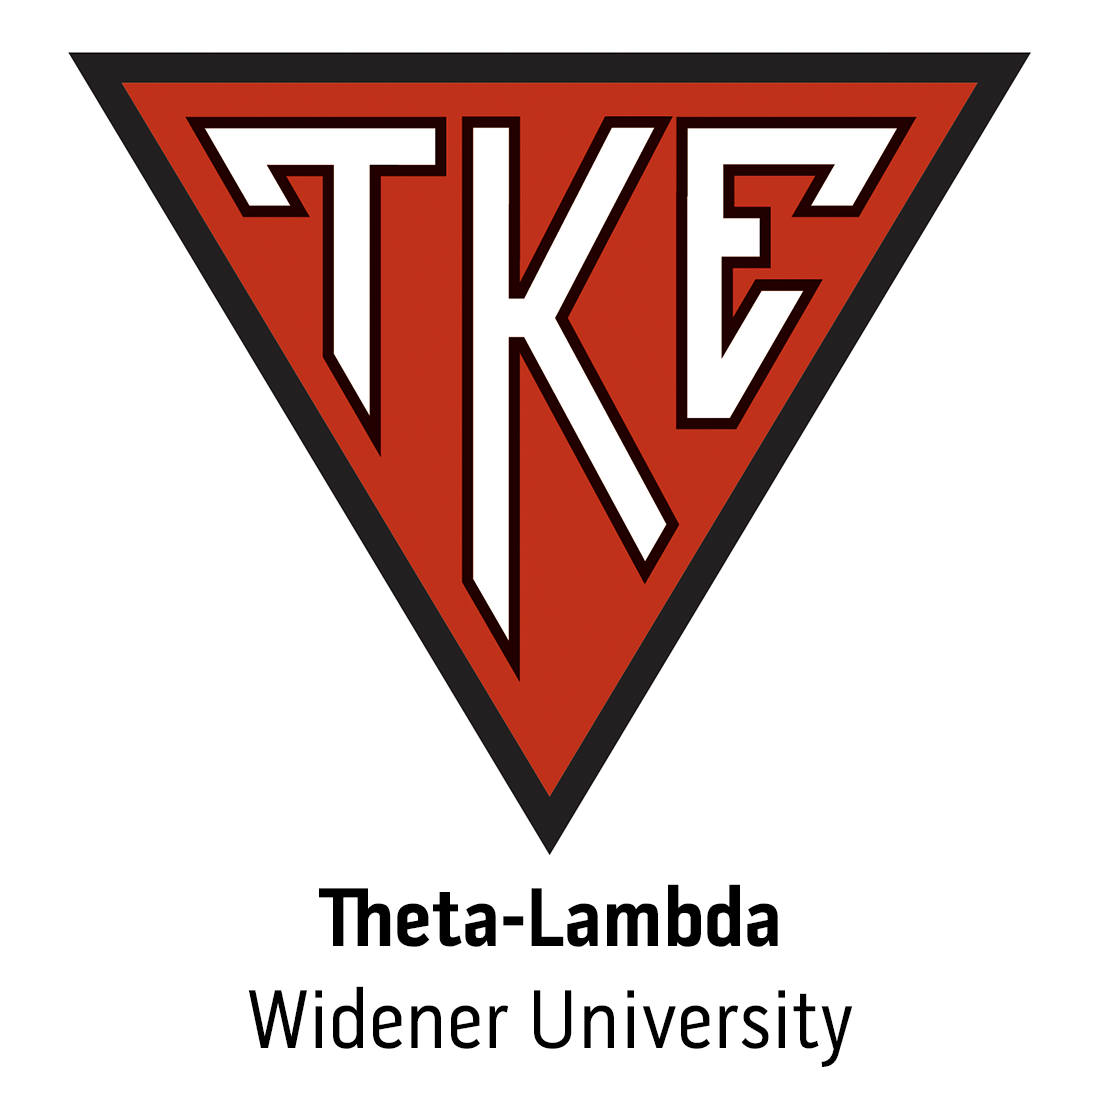 Theta-Lambda Chapter at Widener University